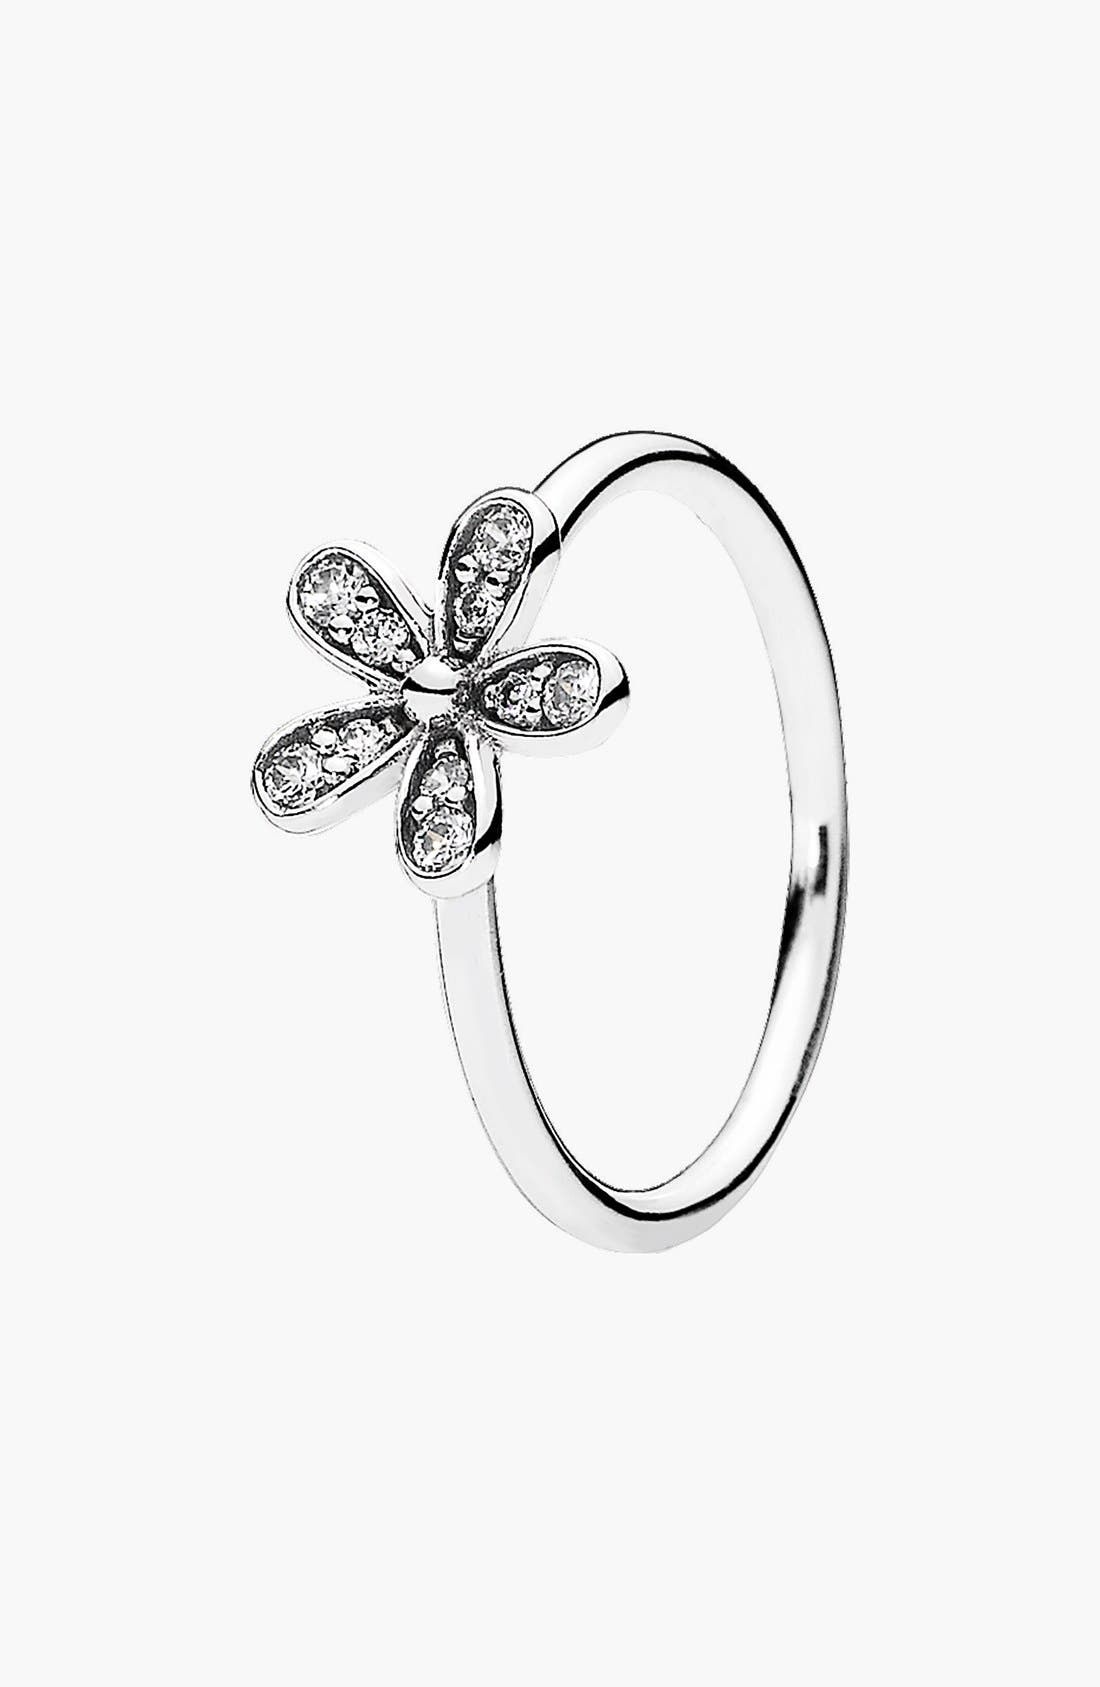 Alternate Image 1 Selected - PANDORA 'Dazzling Daisy' Ring